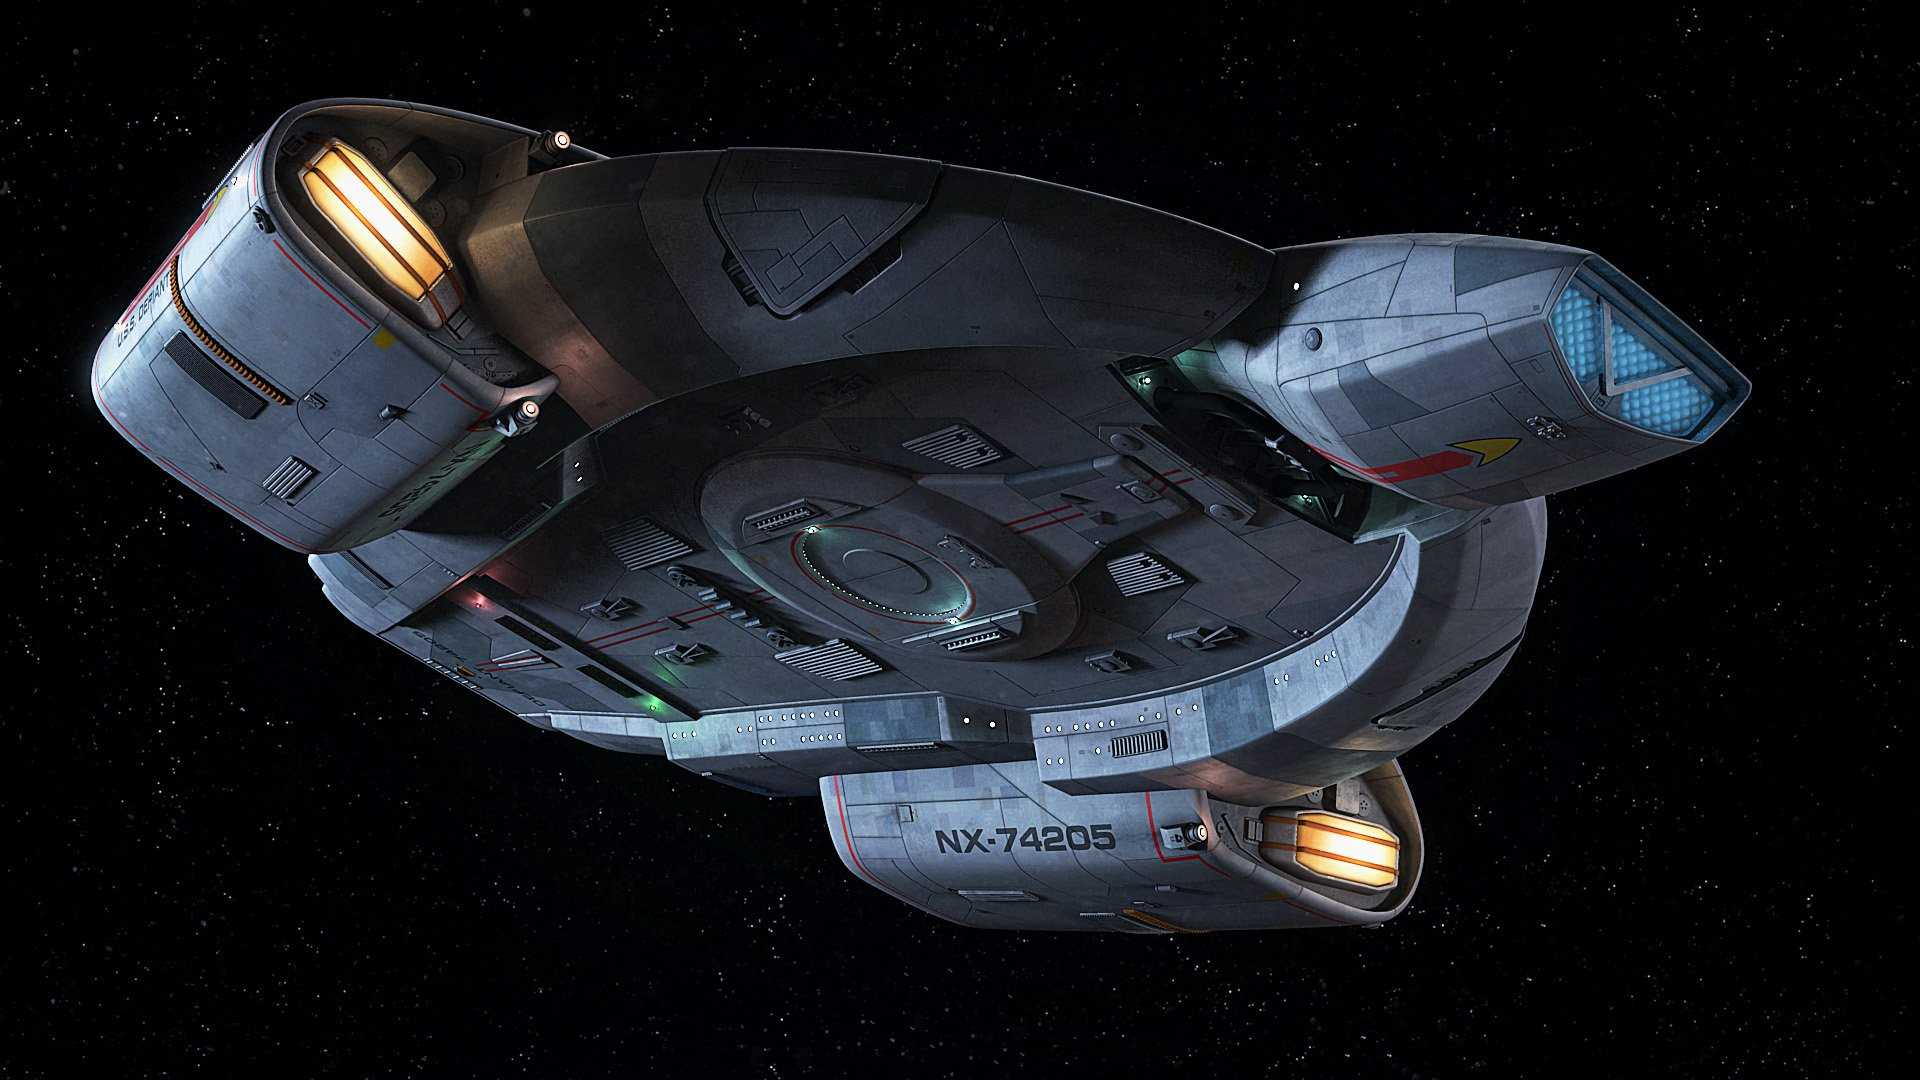 The USS Defiant